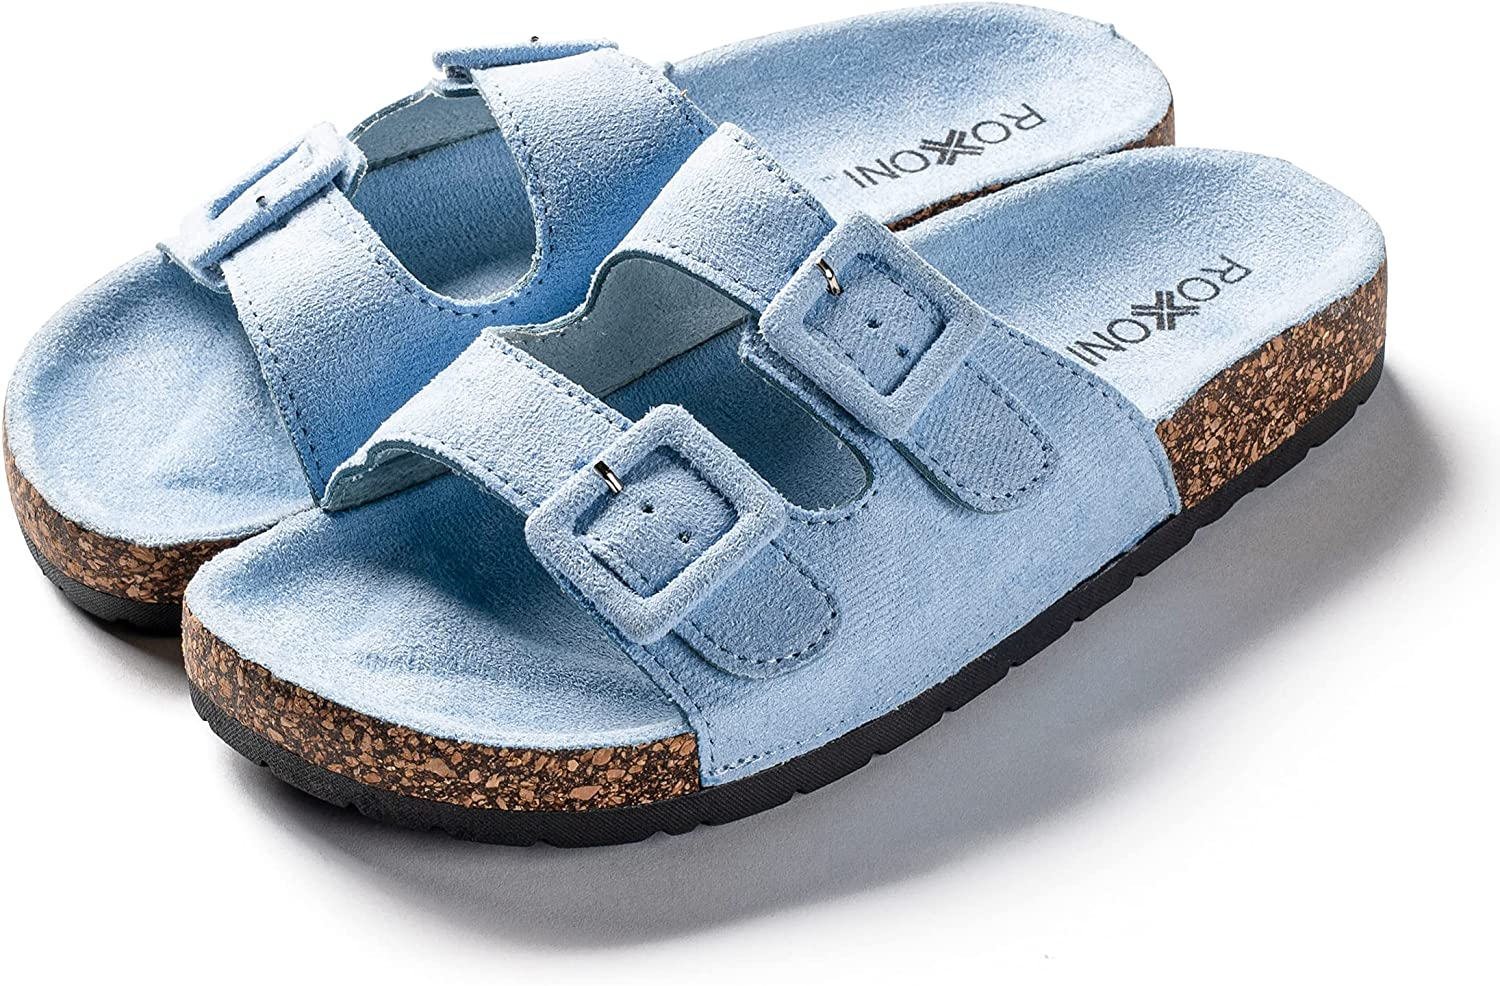 Roxoni Women Comfort Sandals Double Buckle Adjustable EVA Flat Slides Footbed Suede with Arch Support Non-Slip